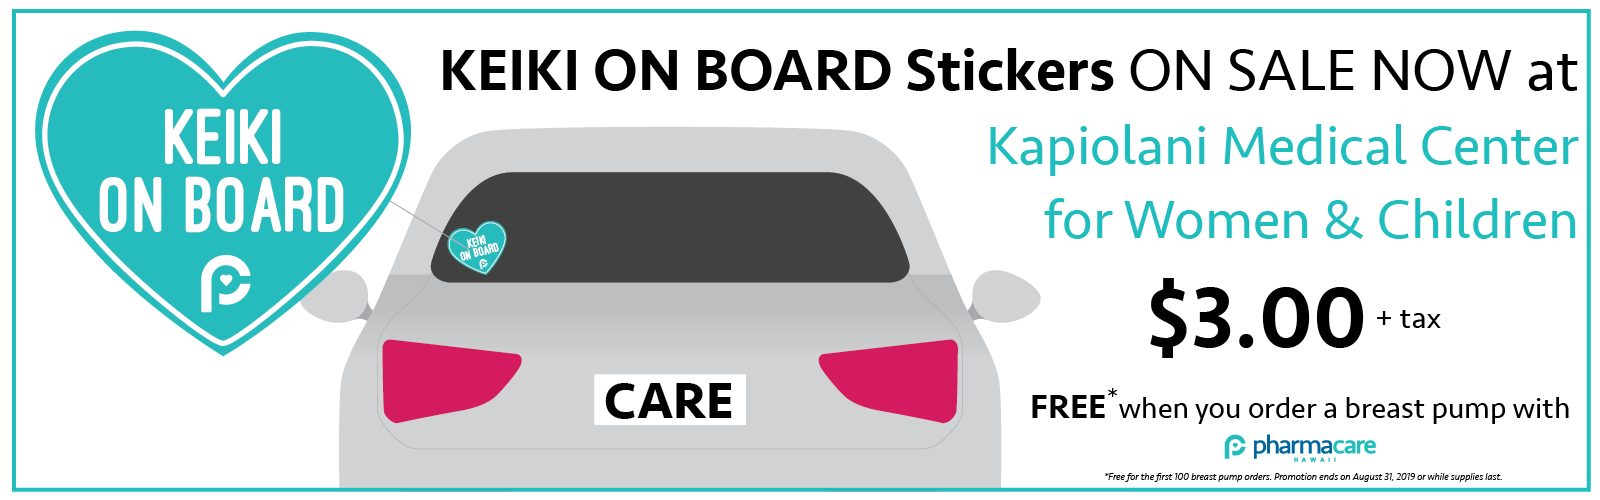 Keiki on Board Stickers_1600x500.png